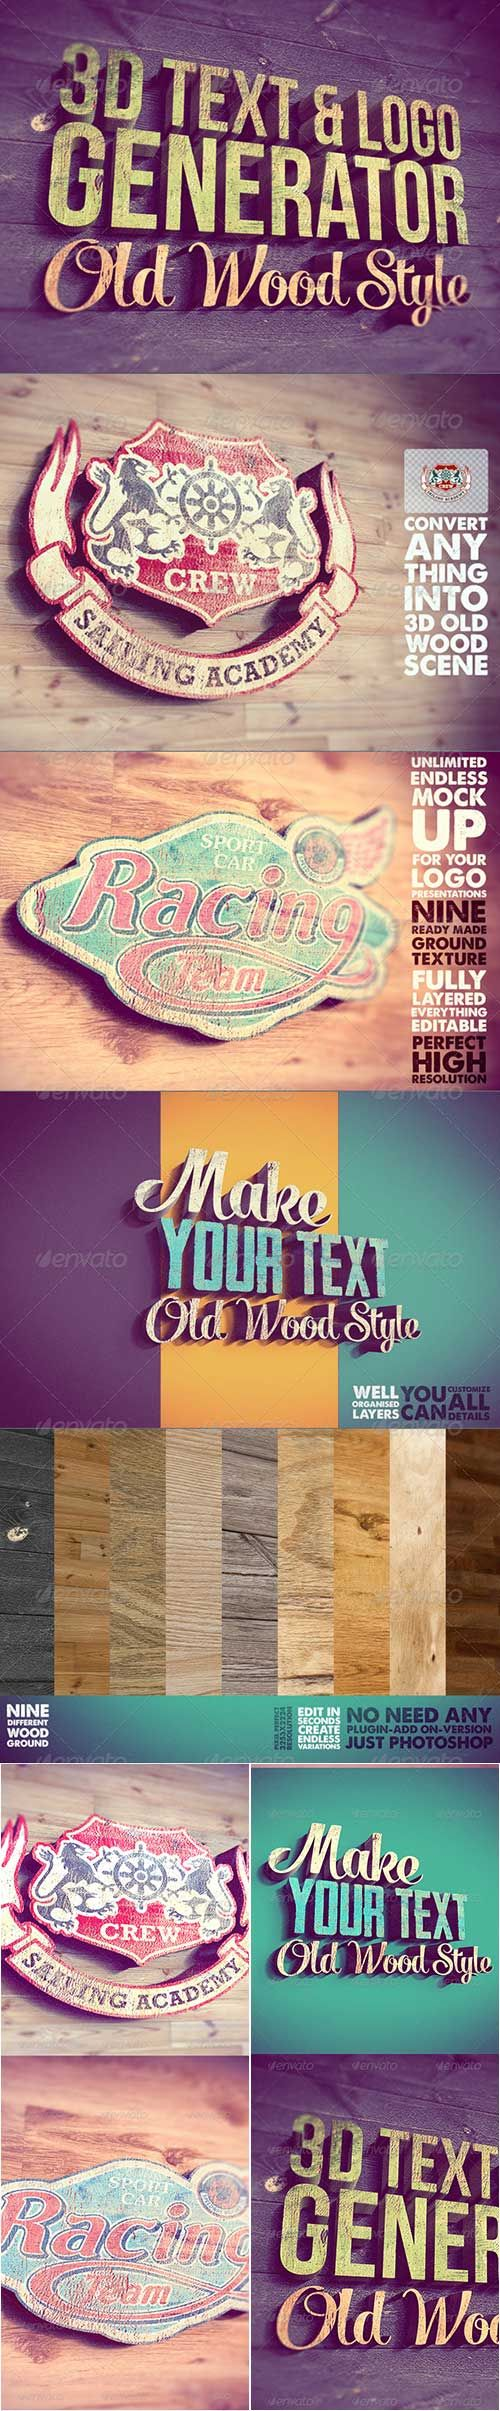 3d text, Generators and Texts on Pinterest